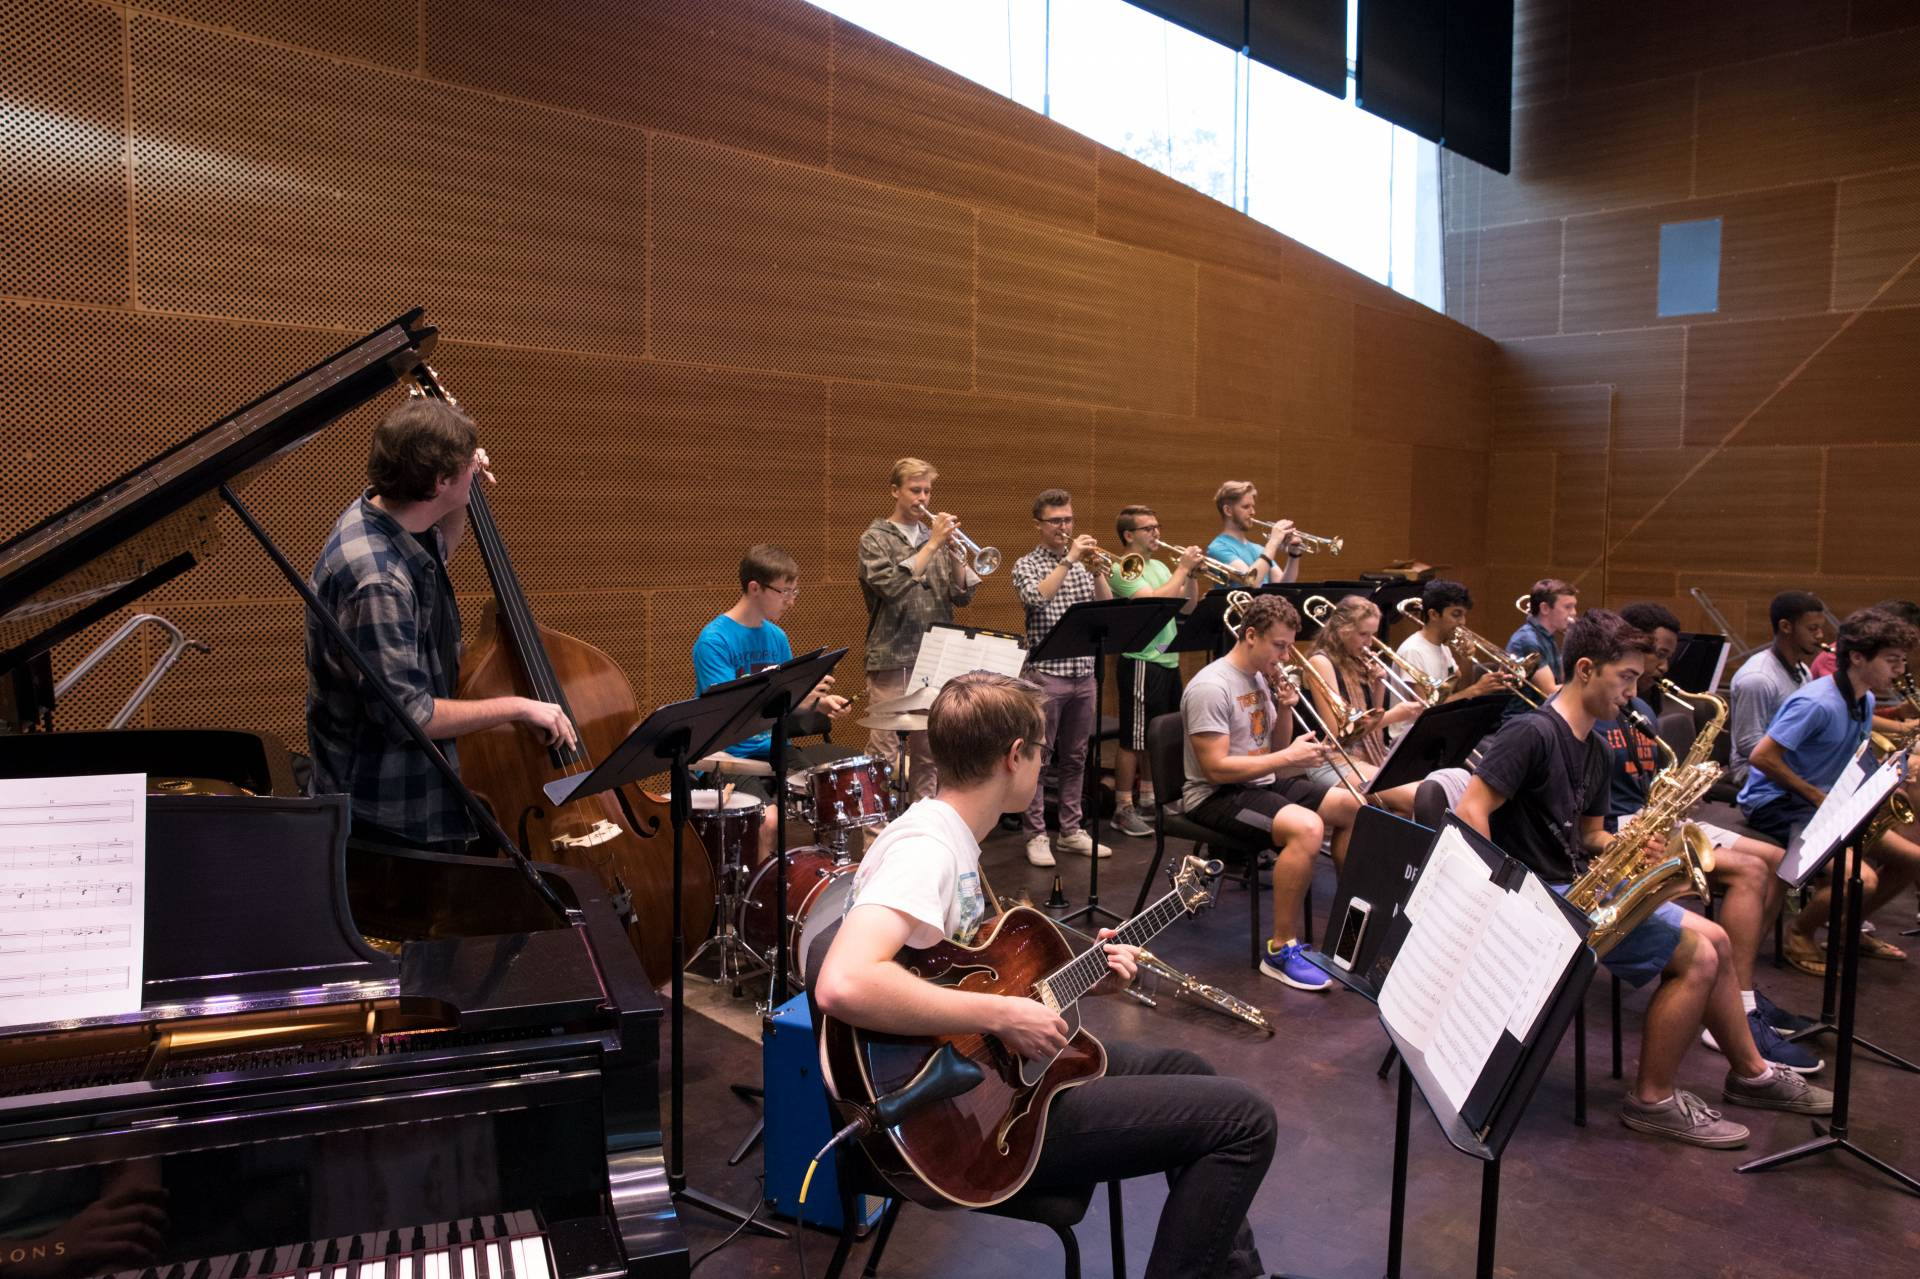 The Princeton University Jazz Ensemble rehearsing